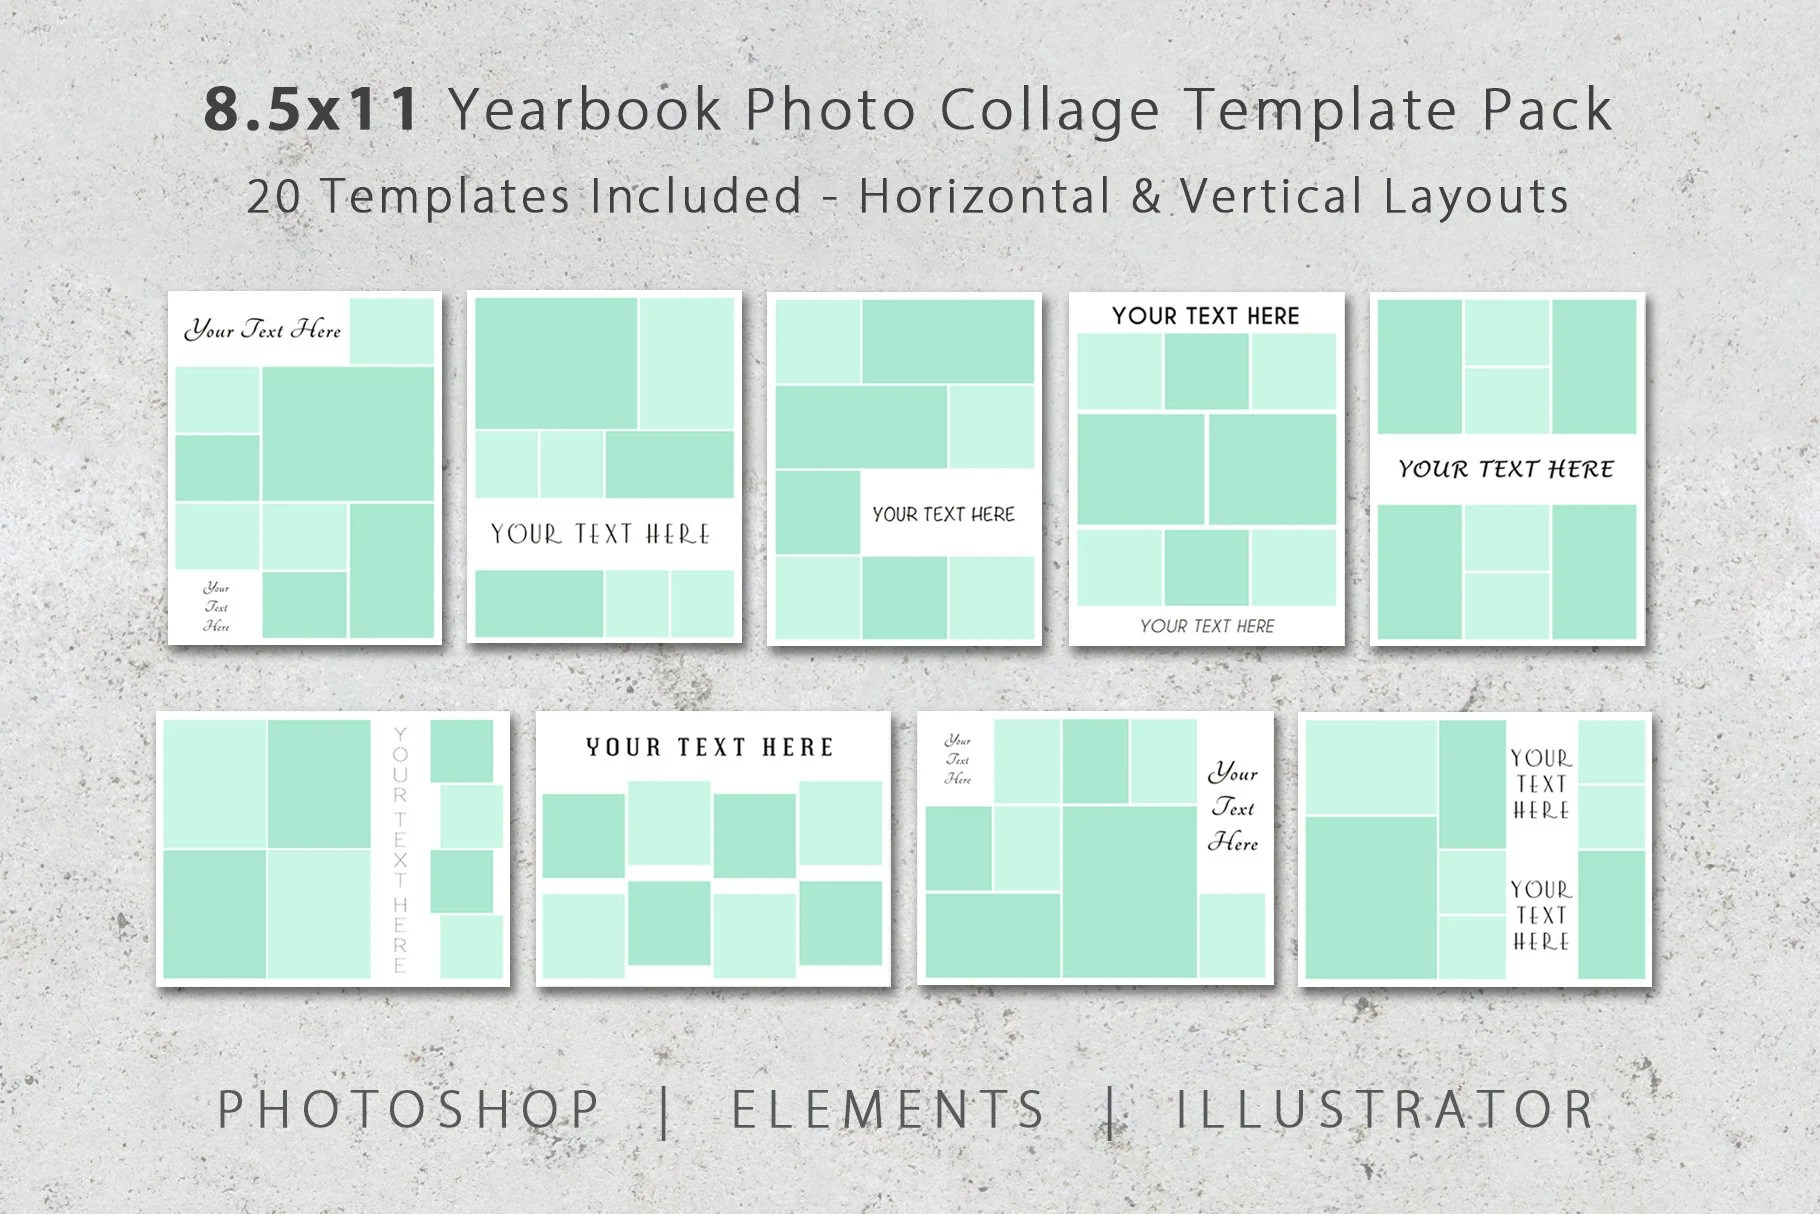 85x11 Photo Album Template Pack 20 Templates Photo Collage Etsy